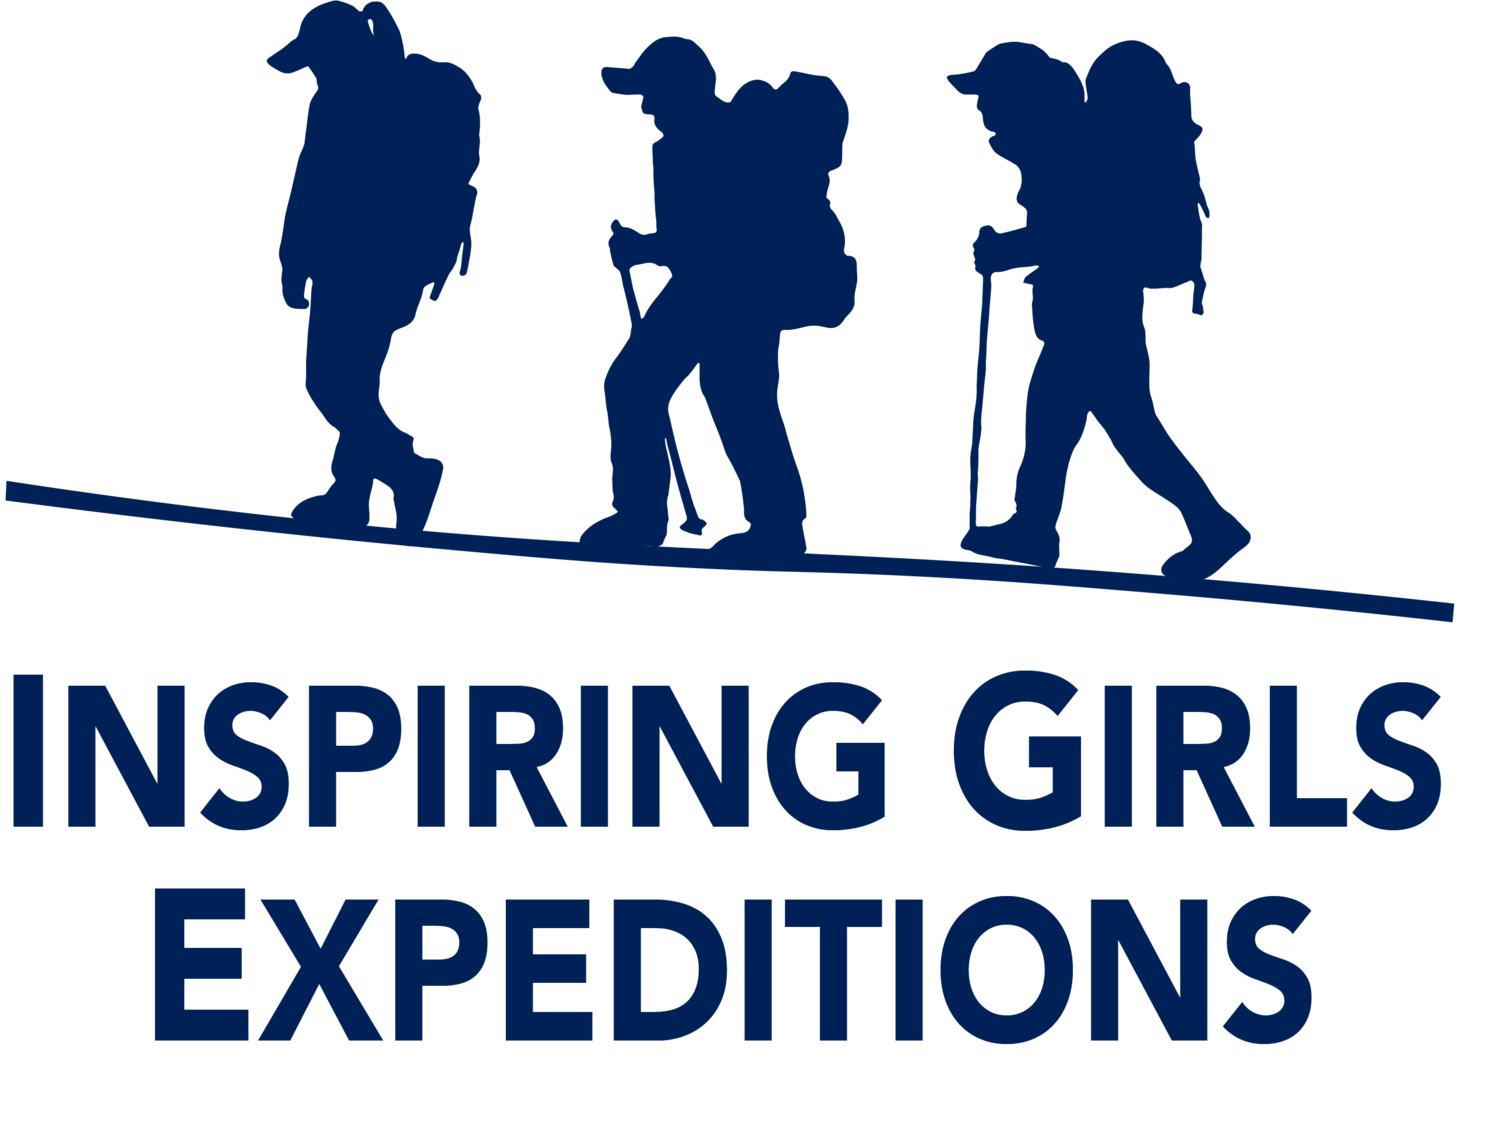 Inspiring Girls Expeditions